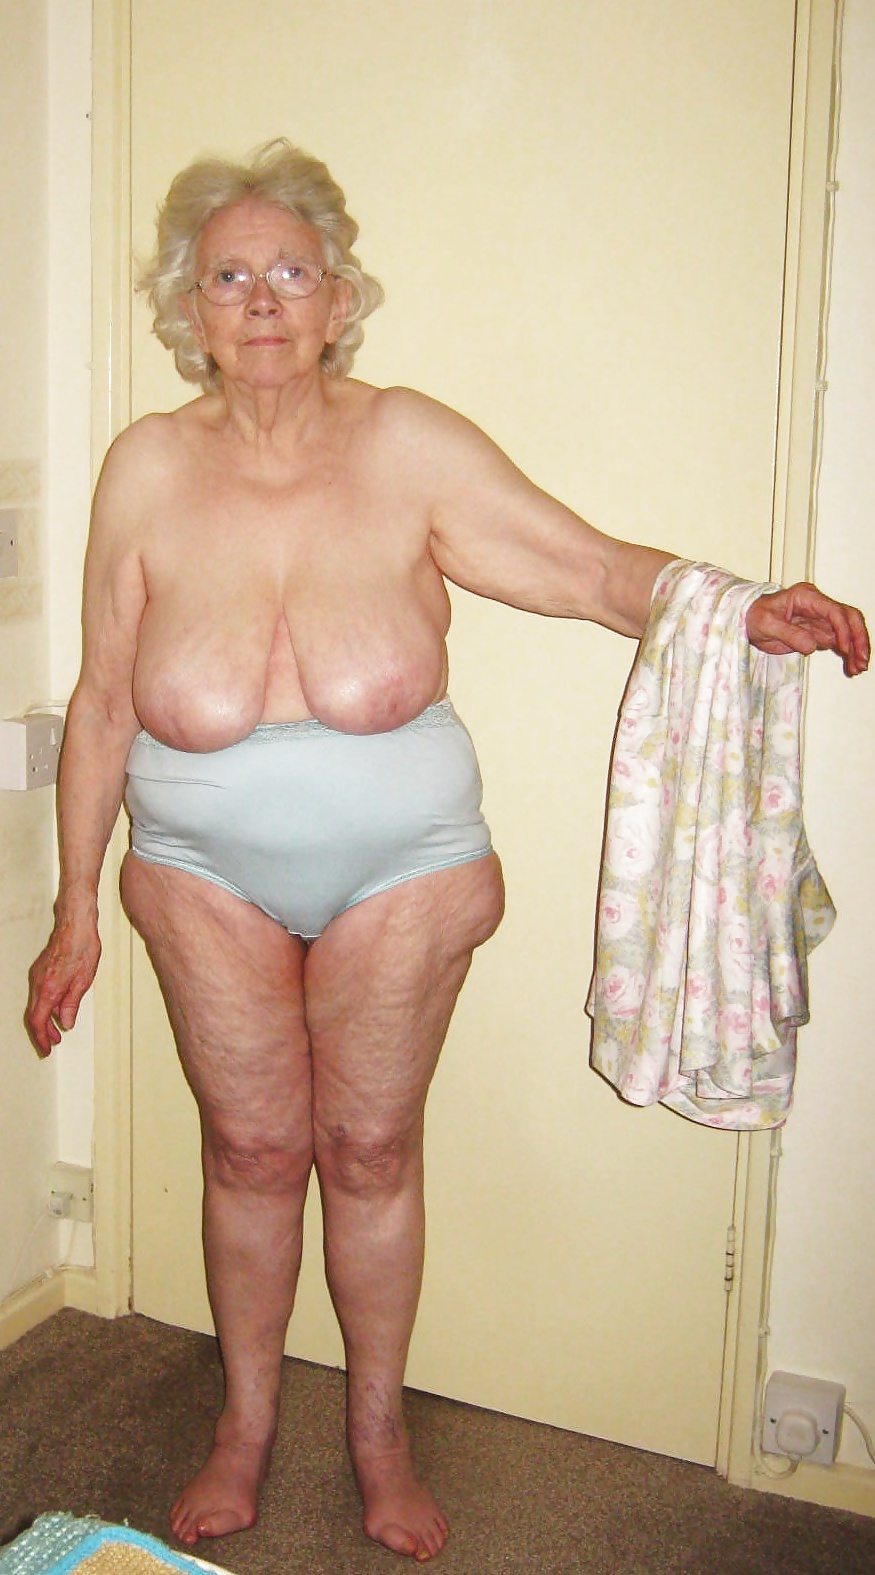 Sheila 80 Year Old Granny From Uk - 19 Pics  Xhamster-9080